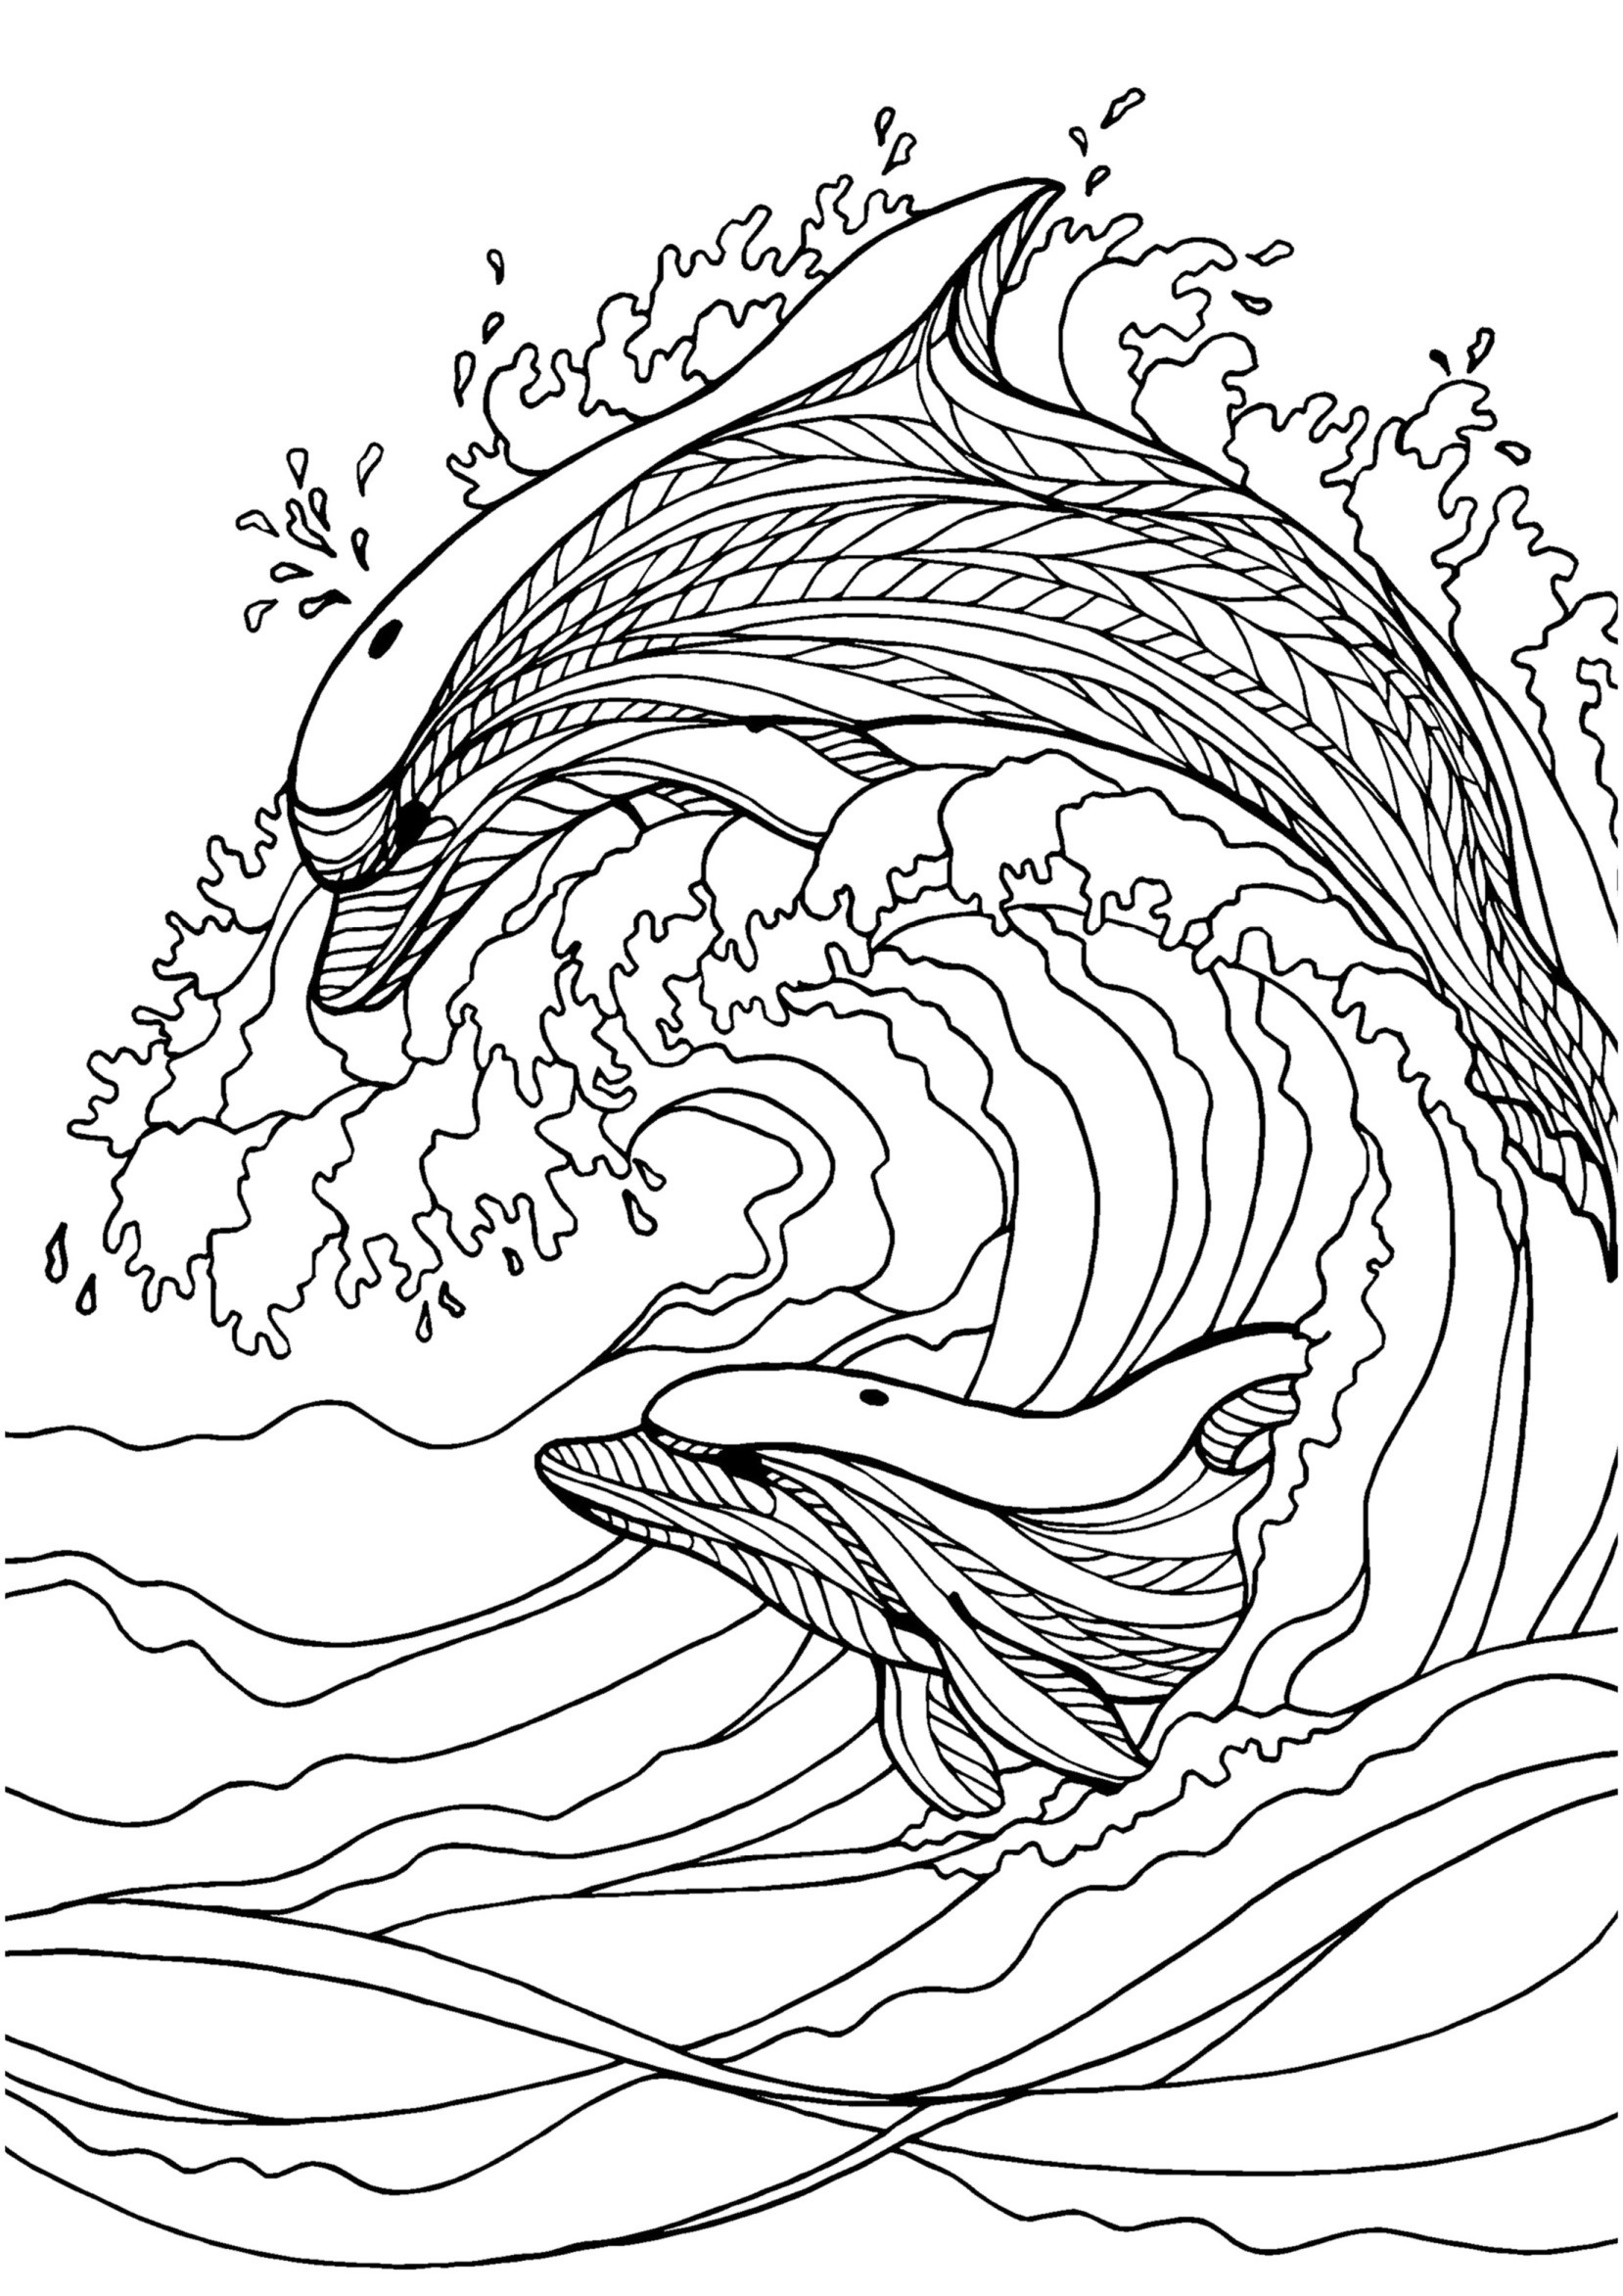 Adult Coloring Pages Dolphin at GetDrawings | Free download